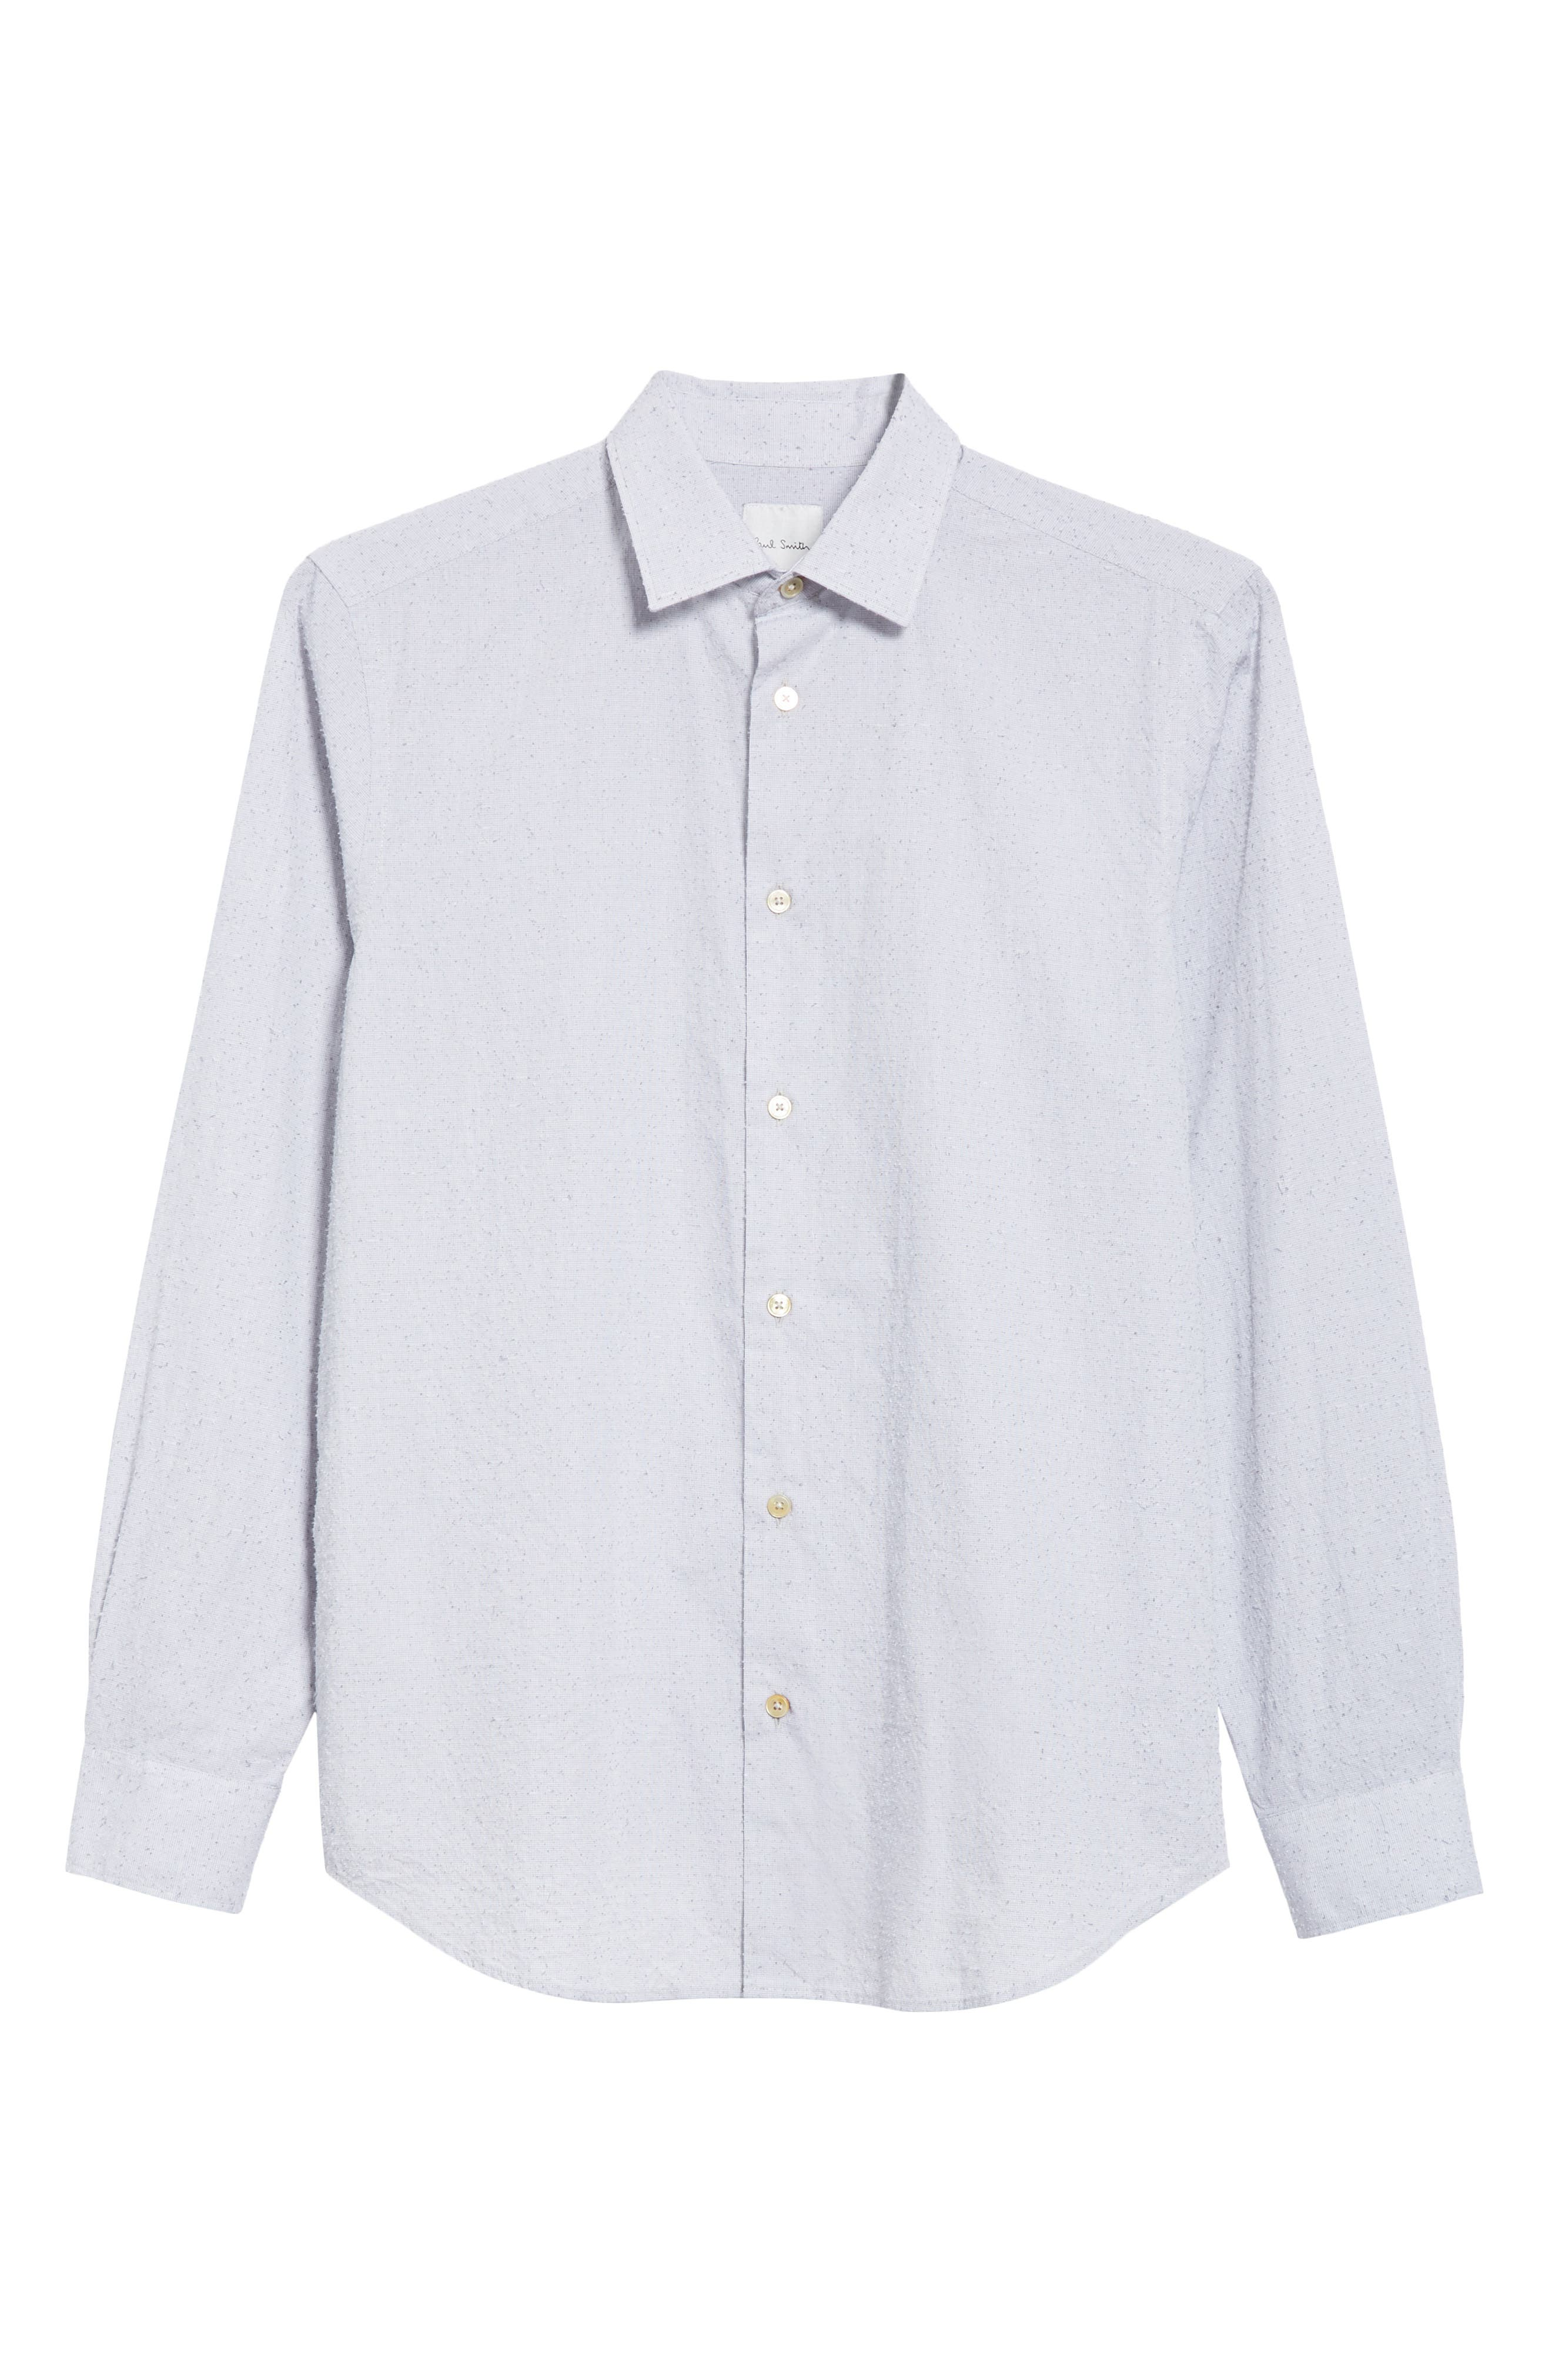 Nep Dot Woven Shirt,                             Alternate thumbnail 6, color,                             Blue